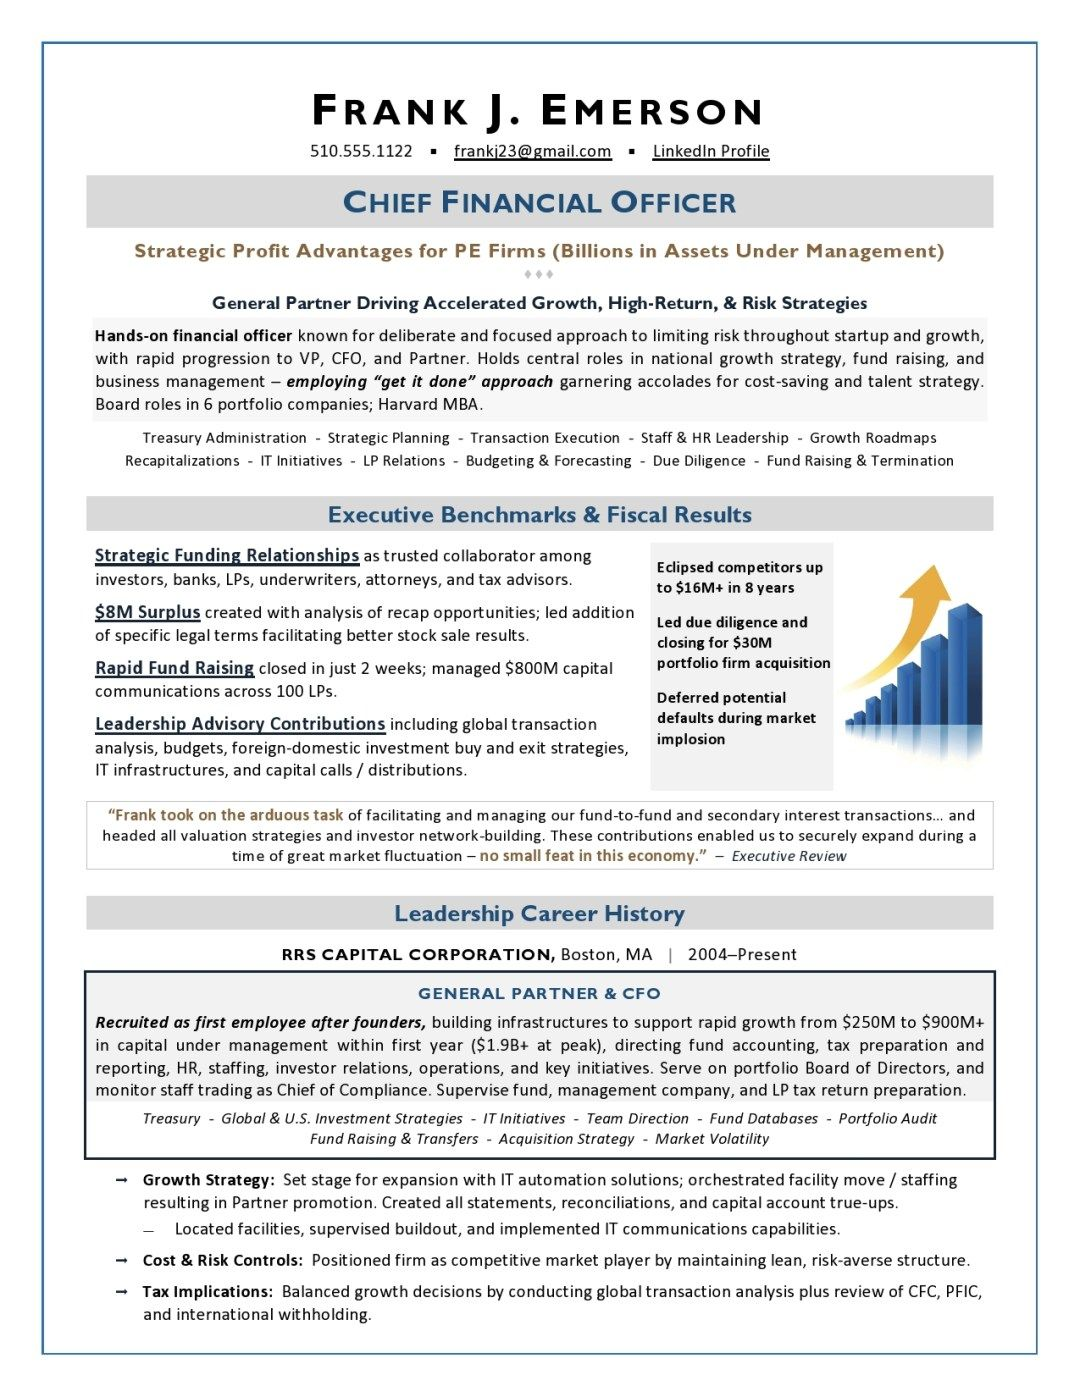 Private Equity Cfo Resume Sample Page 1 Executive Resume Resume Examples Resume Writer